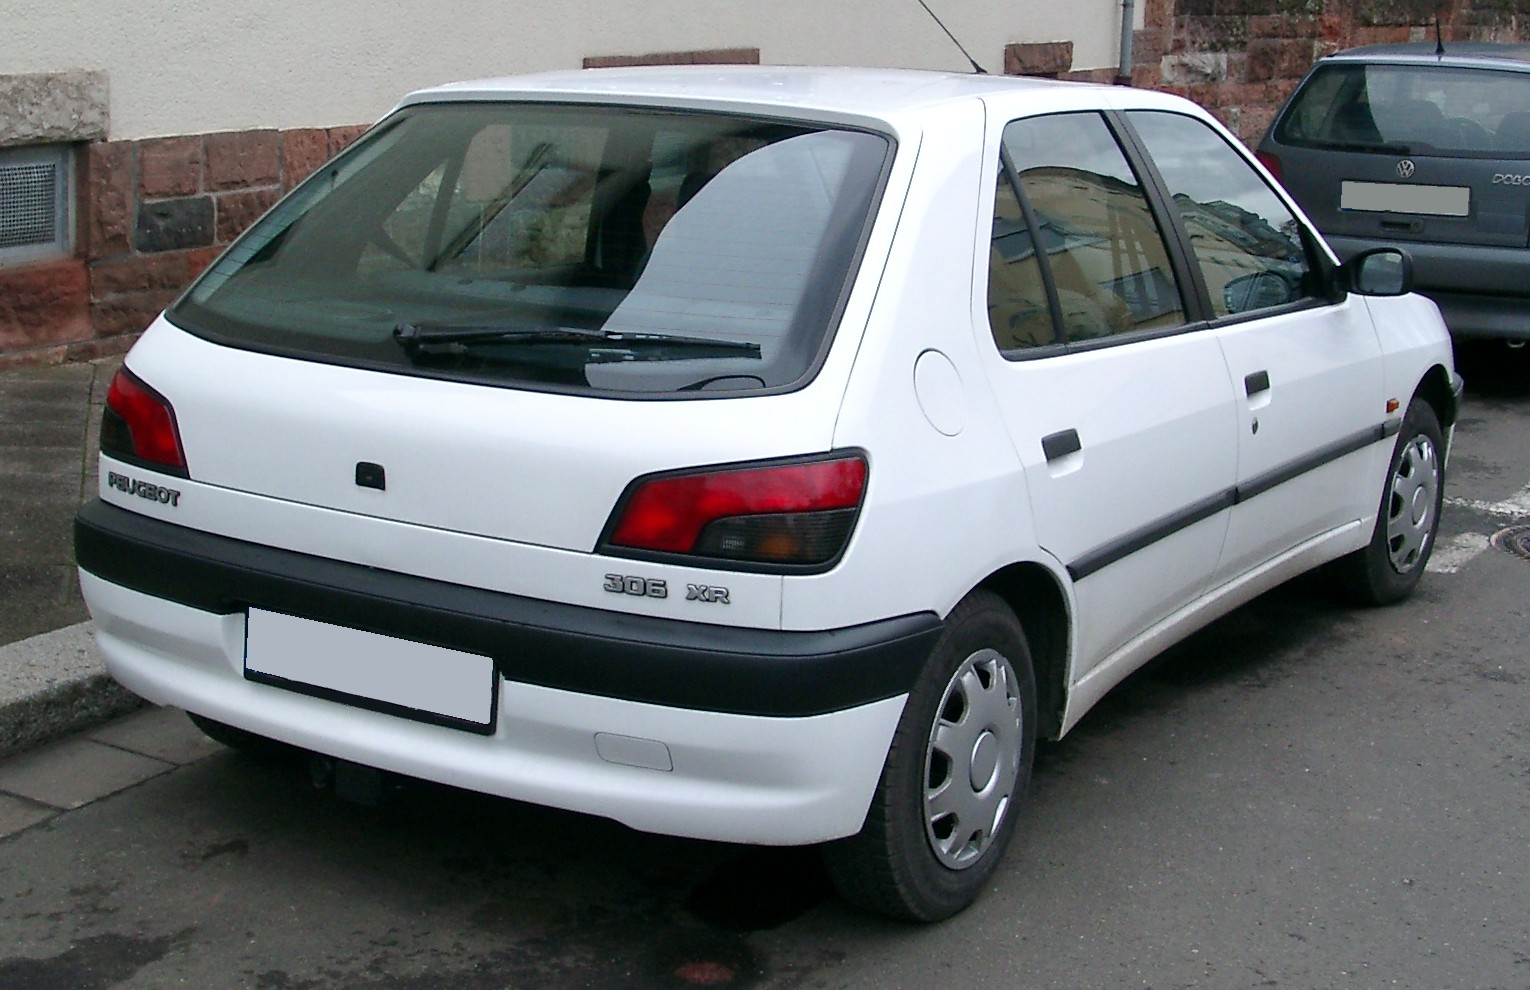 PEUGEOT 306 - Review and photos